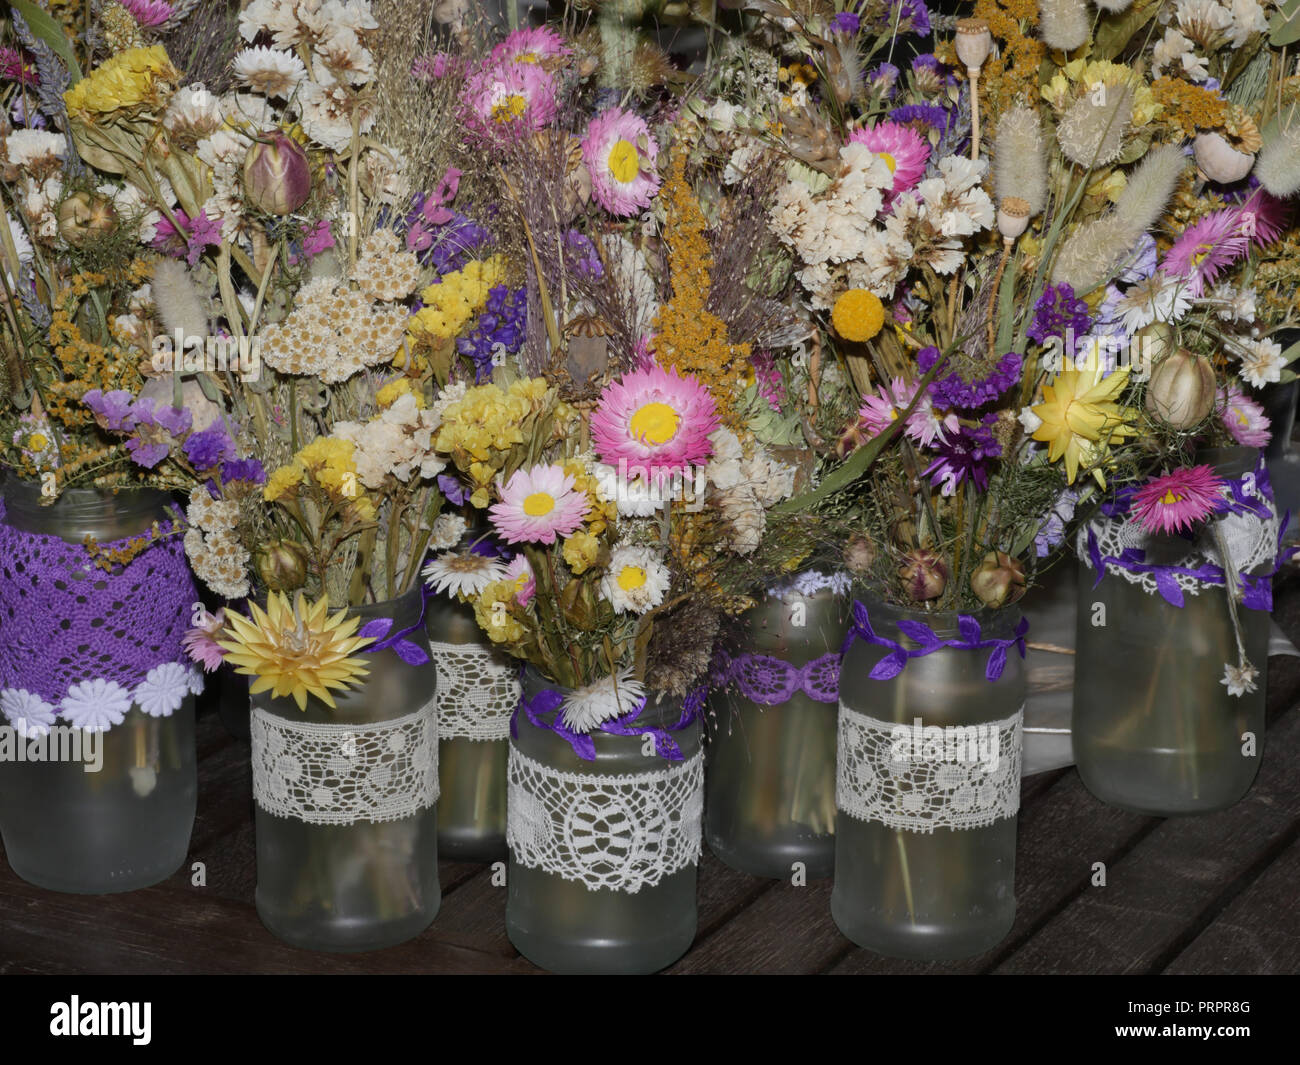 Dried Flowers In Jam Jars For Wedding Tables Stock Photo Alamy